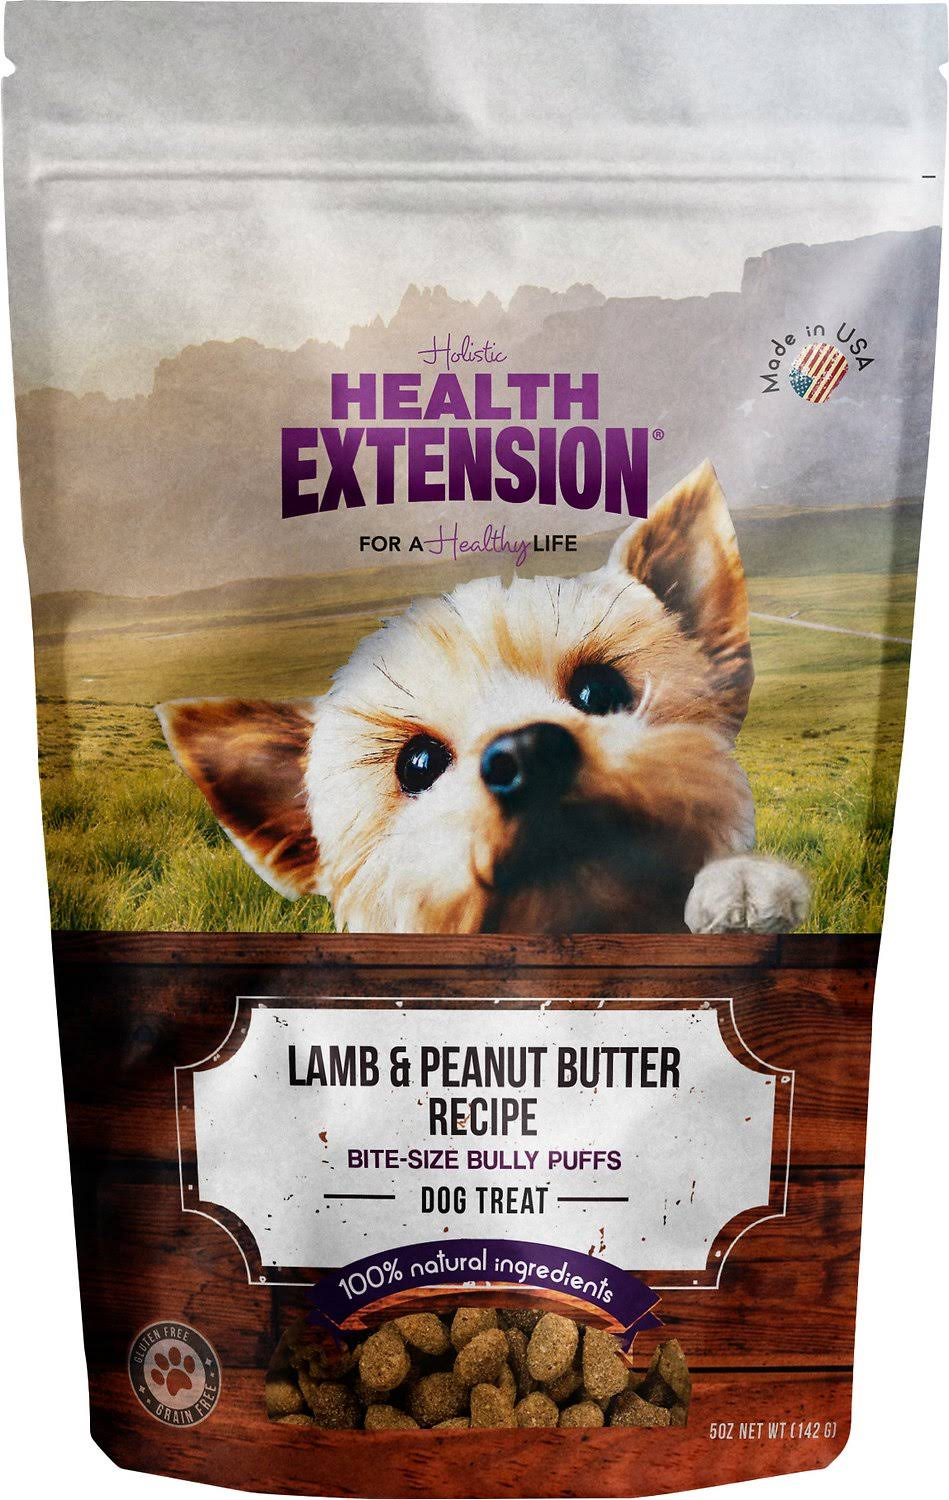 Health Extension Bully Puffs Dog Treat - Lamb and Peanut Butter, 5oz